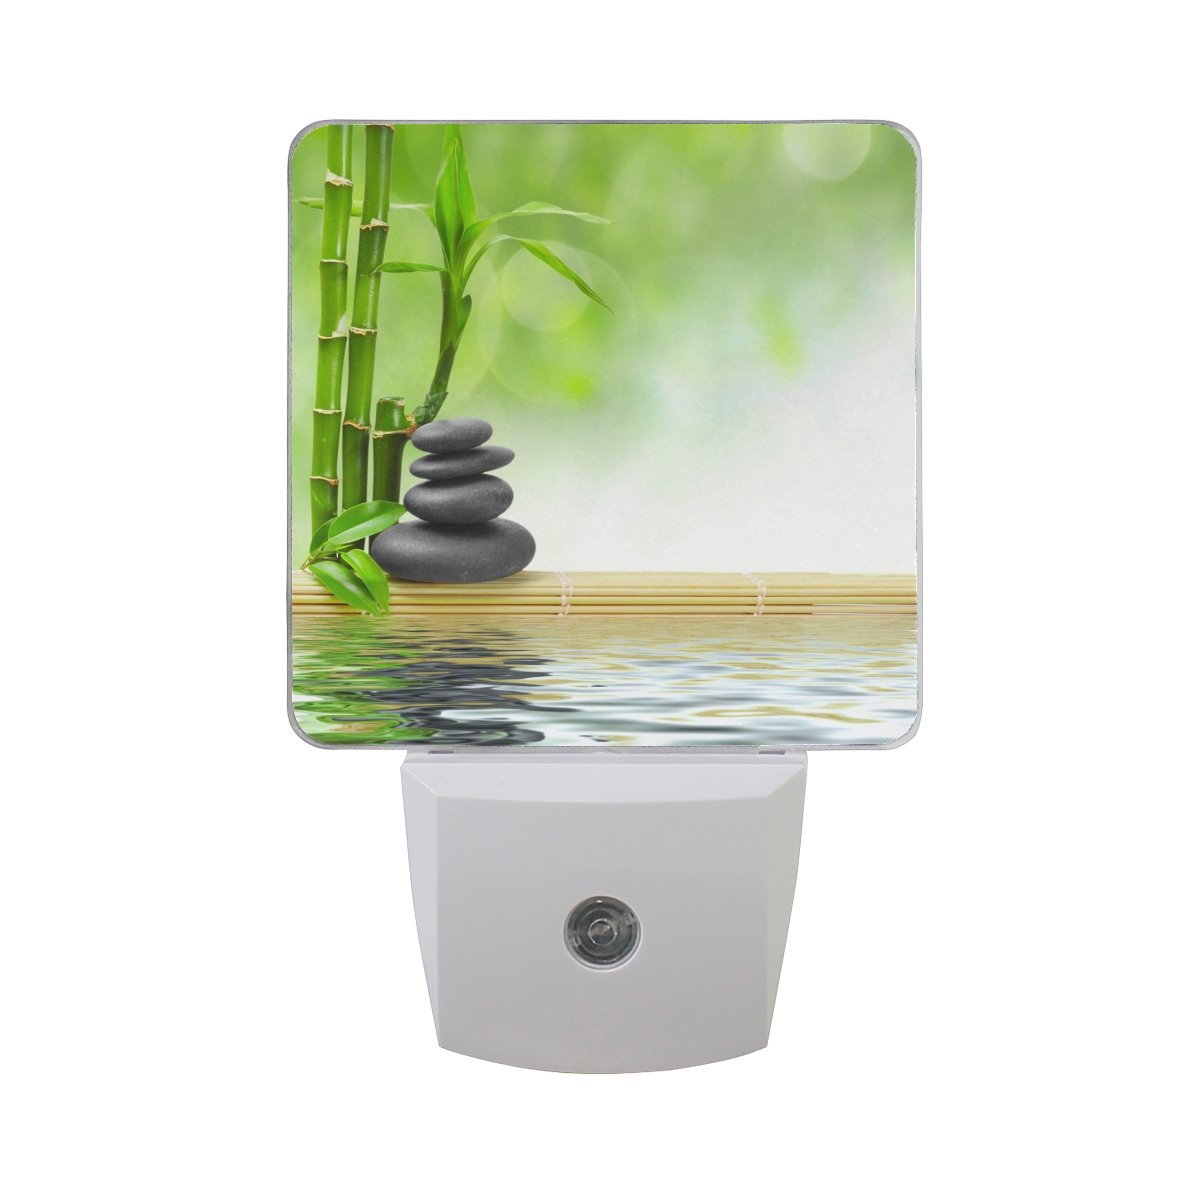 Naanle Set Of 2 Spa Zen Stone Green Bamboo Water Auto Sensor LED Dusk To Dawn Night Light Plug In Indoor for Adults